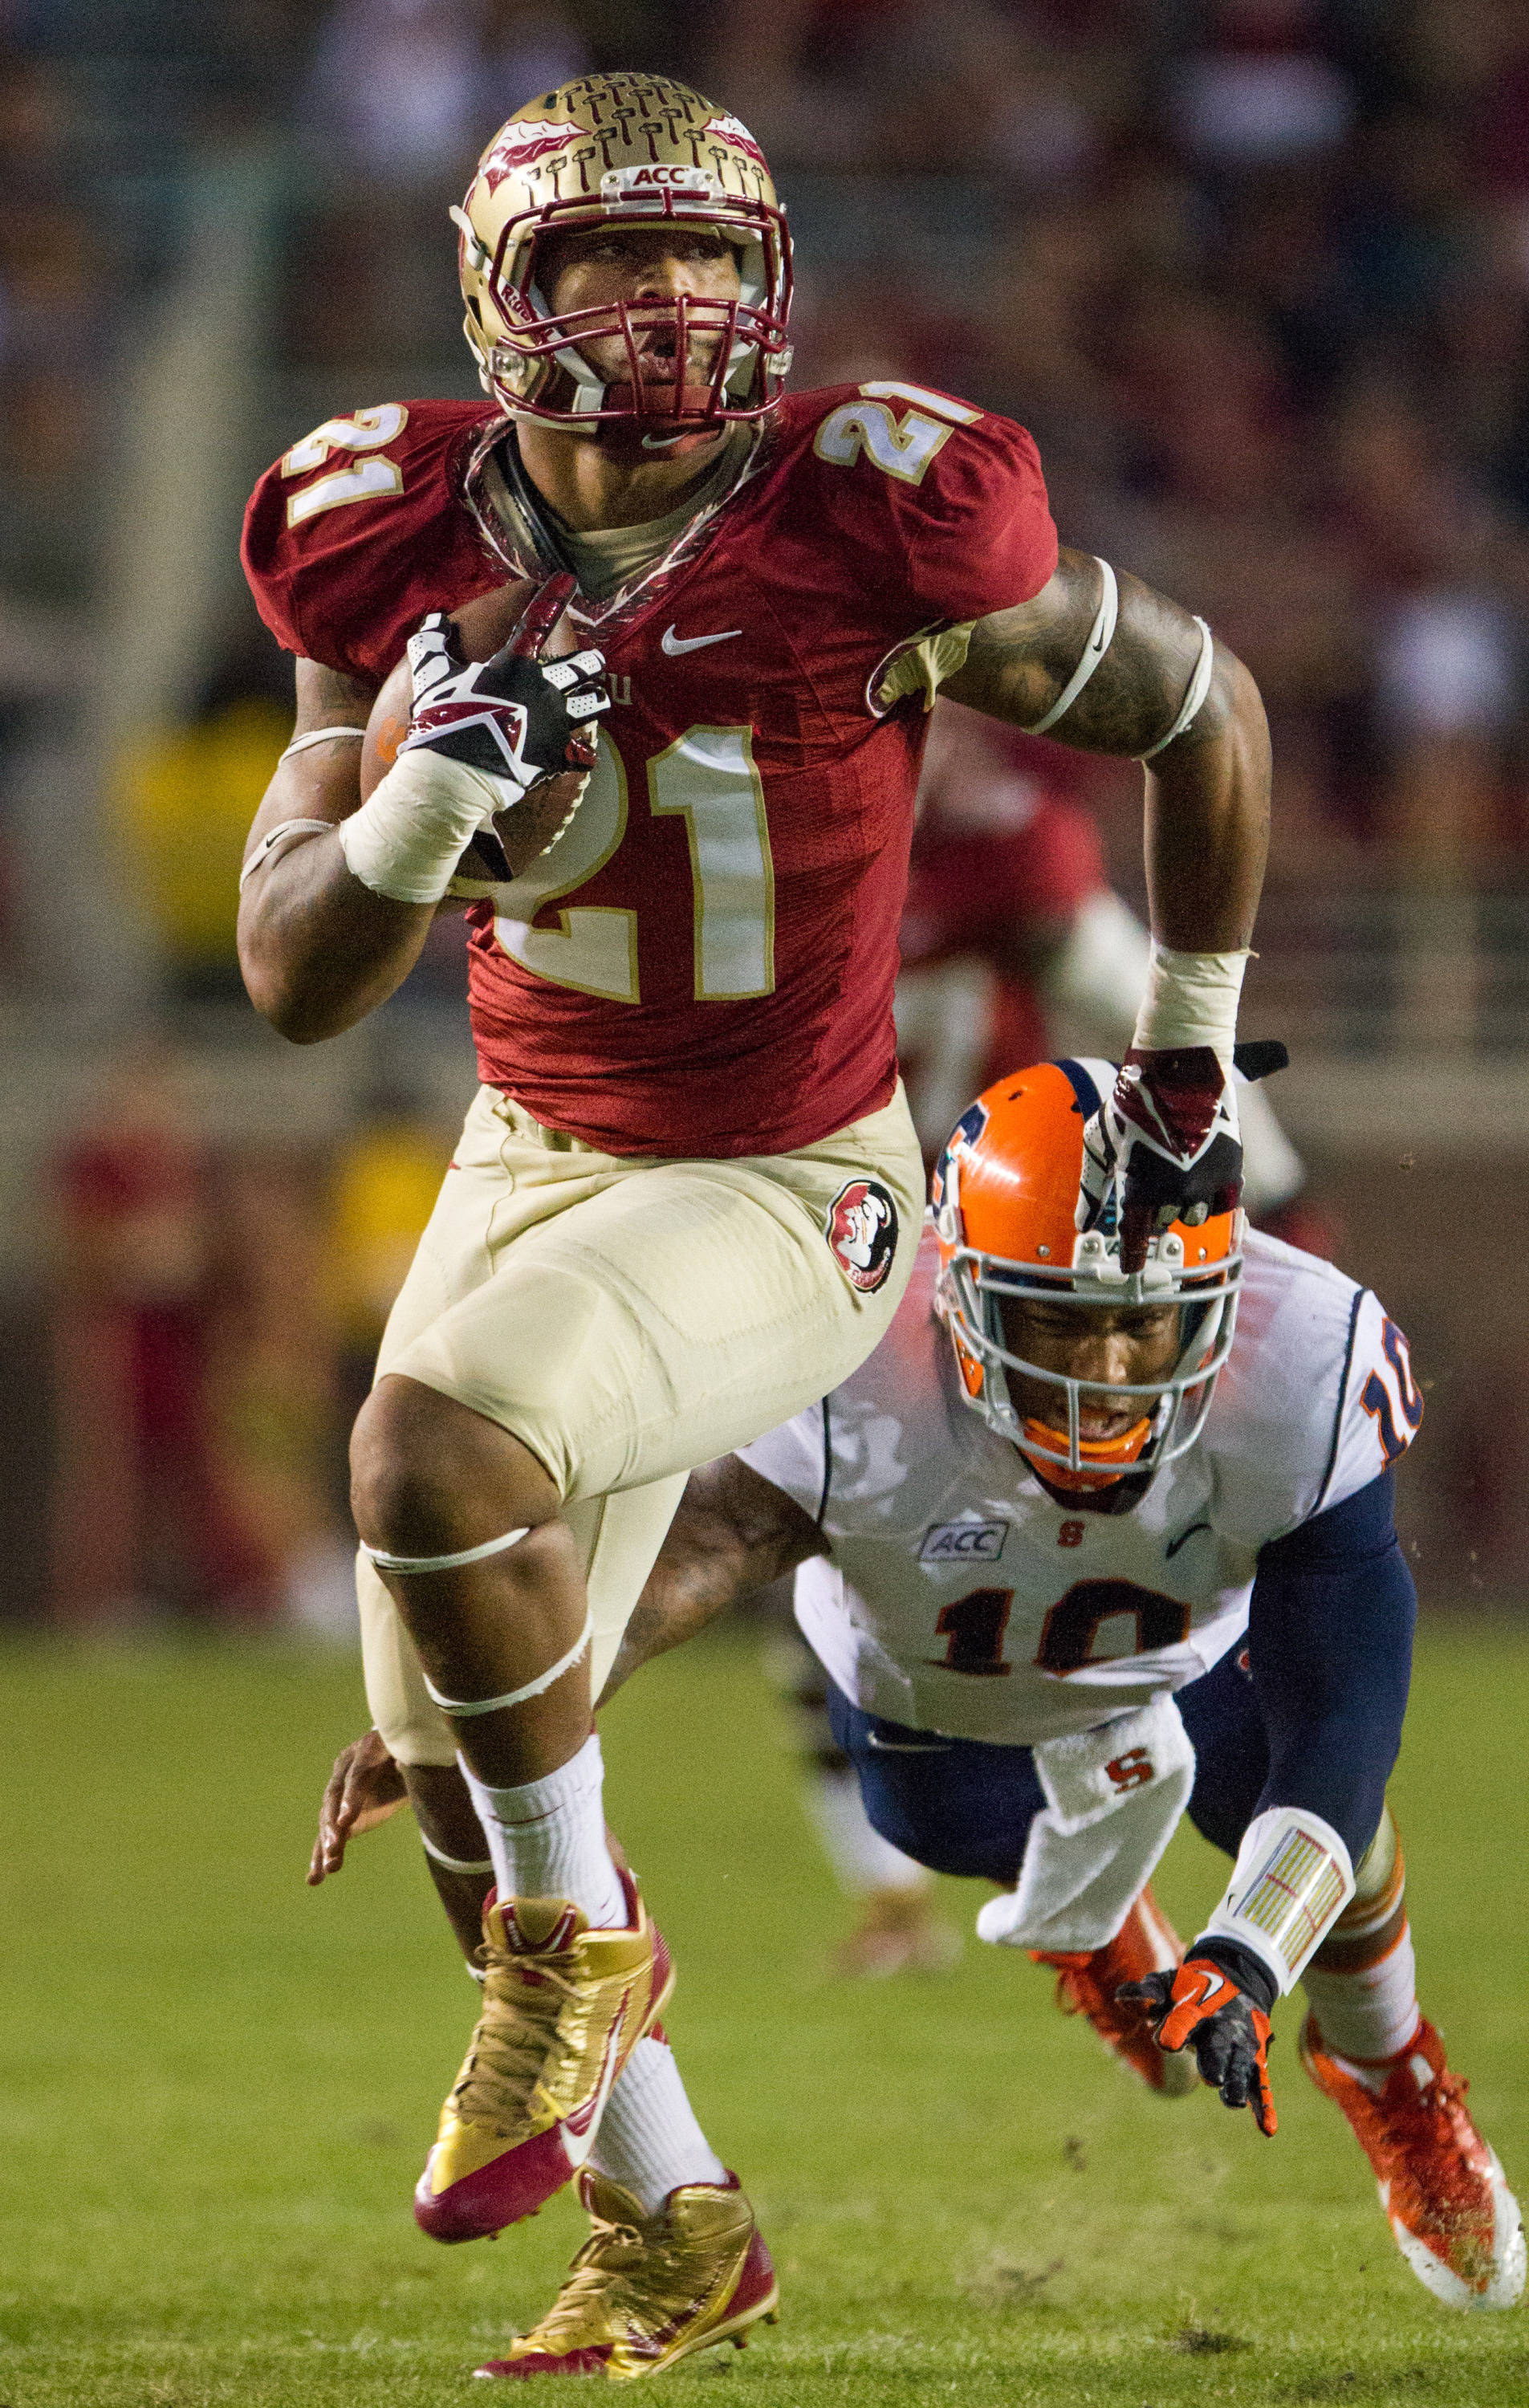 Chris Casher (21) runs in a recovered fumble for a touchdown during FSU Football's 59-3 win over Syracuse on Saturday, November 16, 2013 in Tallahassee, Fla. Photo by Mike Schwarz.